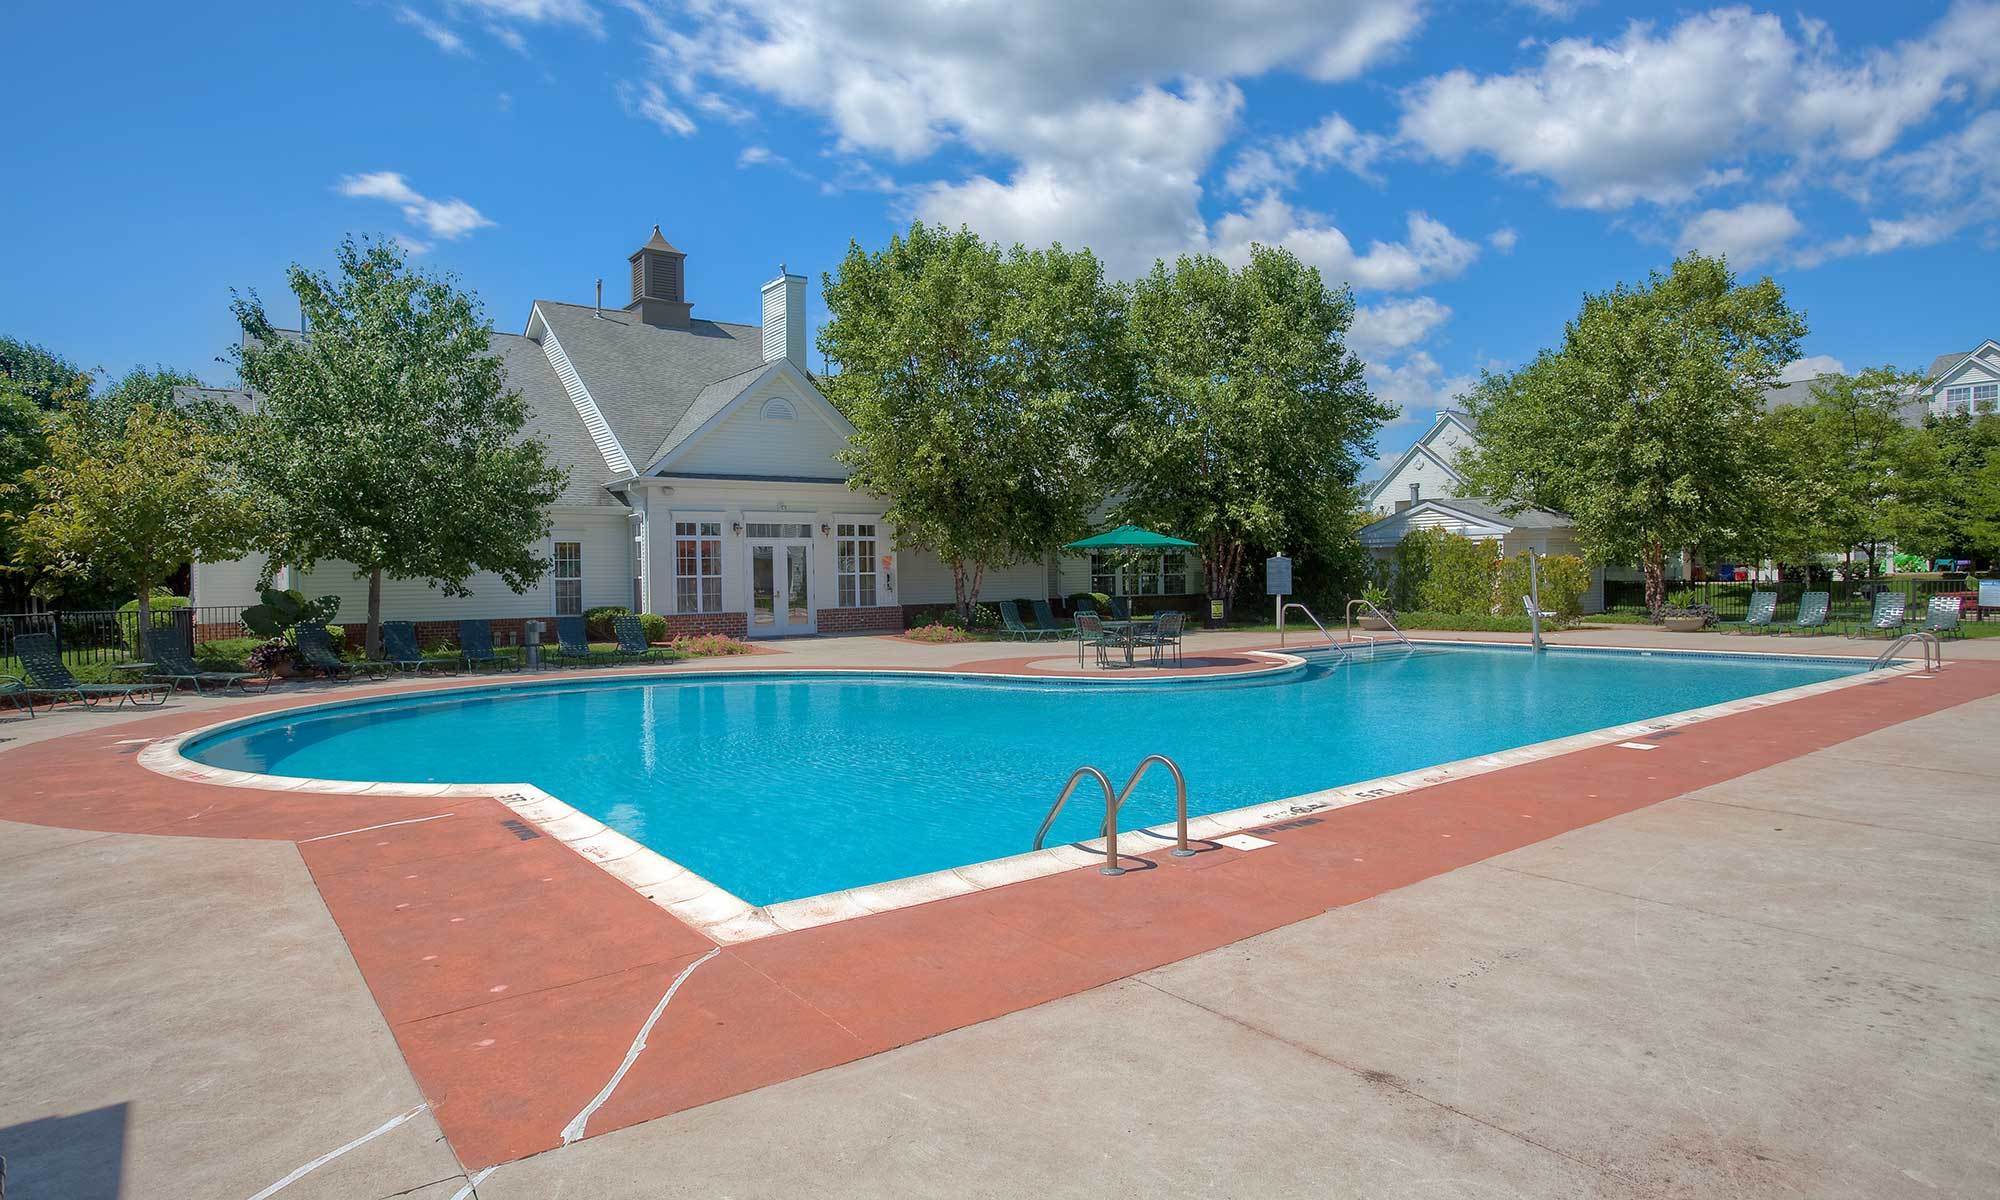 Freehold NJ Apartments for Rent